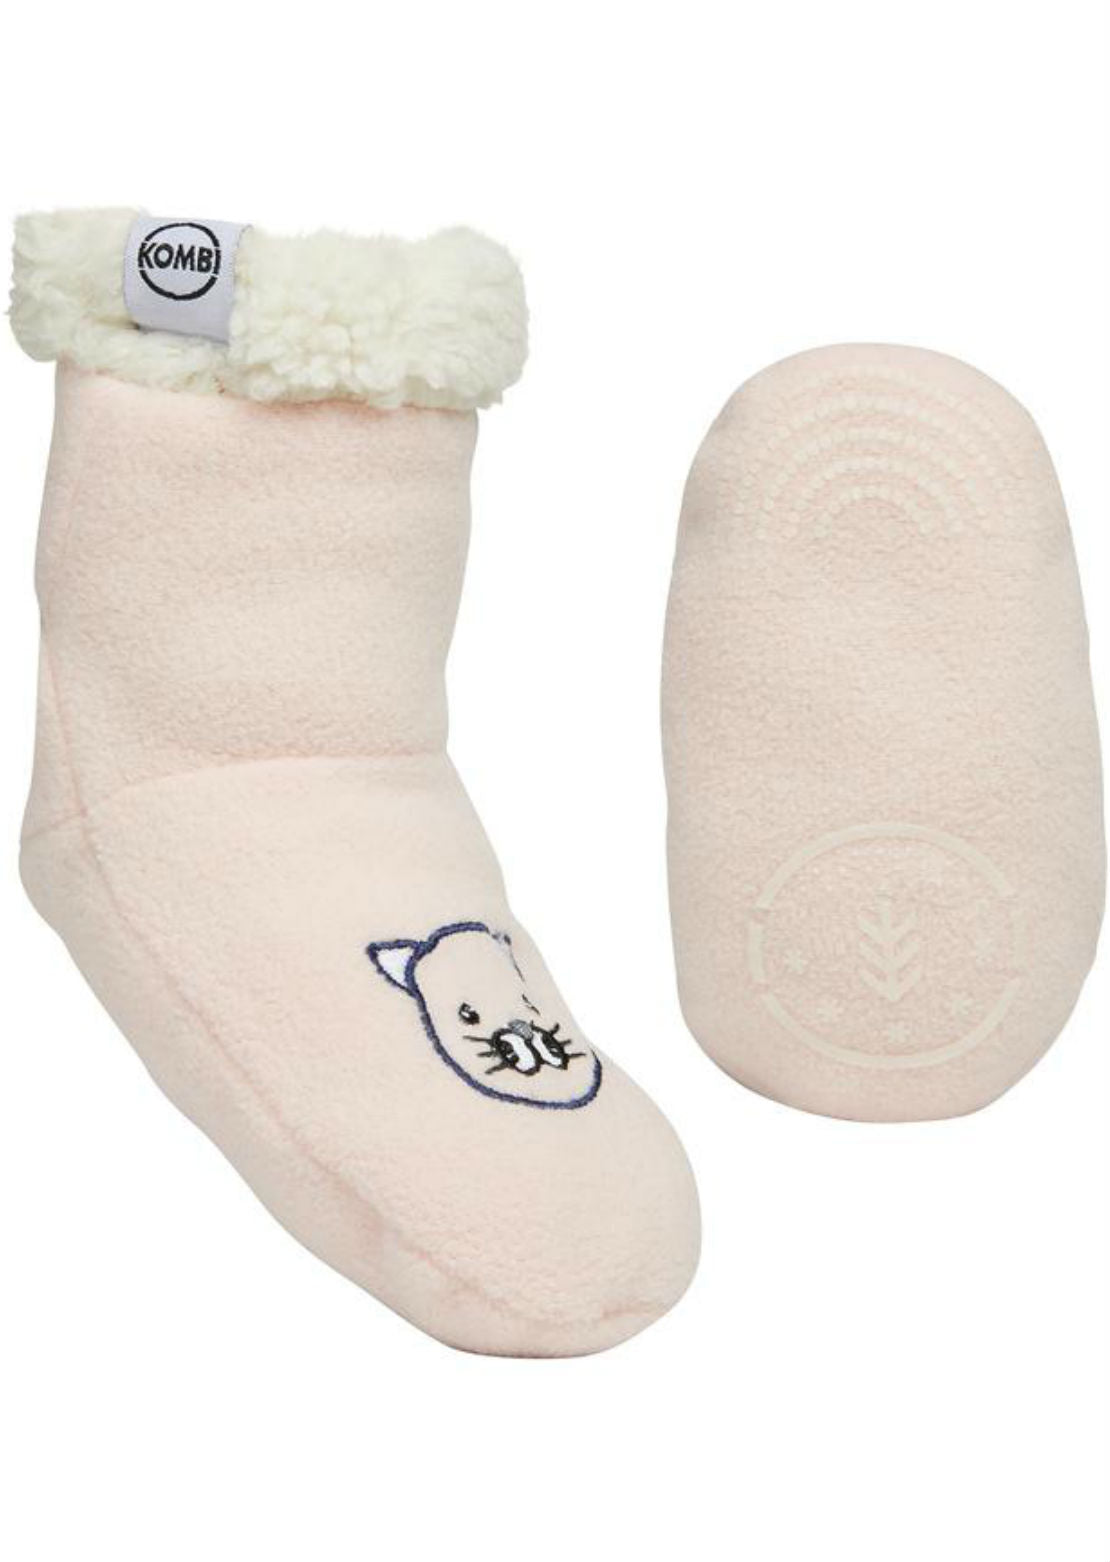 Kombi Junior Infant Sherpa Animal Fleece Sock